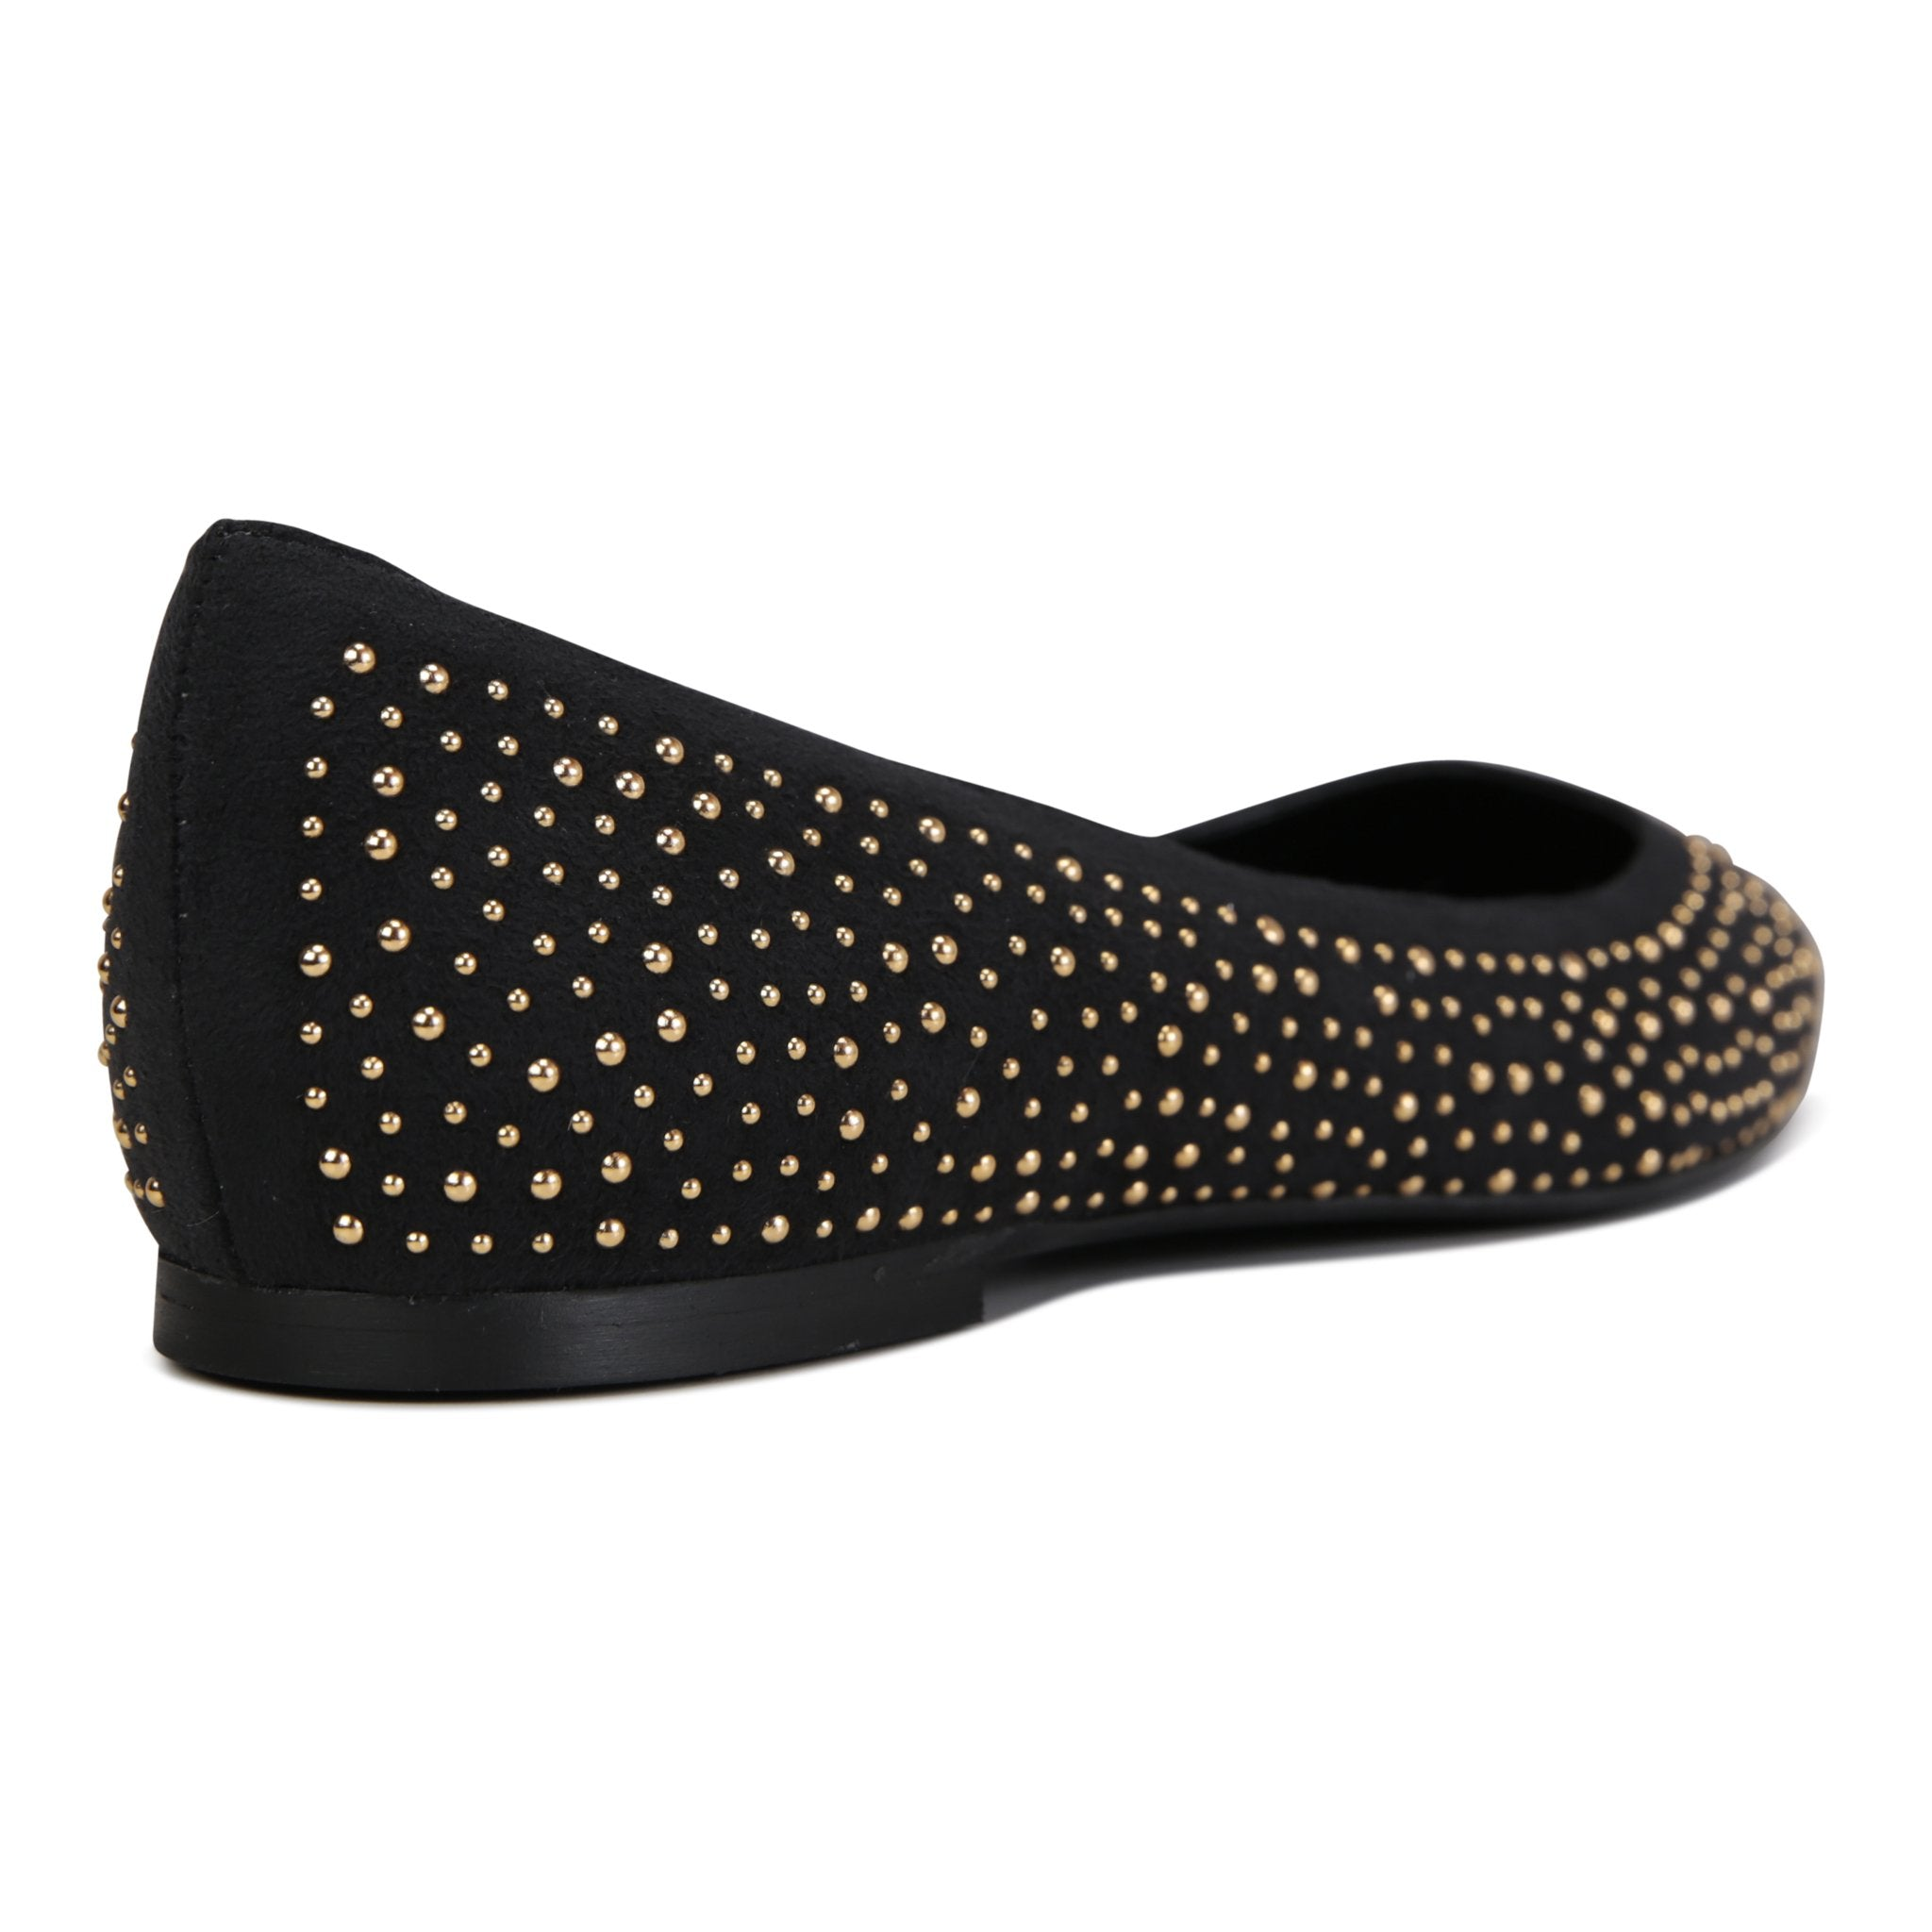 COMO - Velukid Nero + Tiny Gold Studs, VIAJIYU - Women's Hand Made Sustainable Luxury Shoes. Made in Italy. Made to Order.